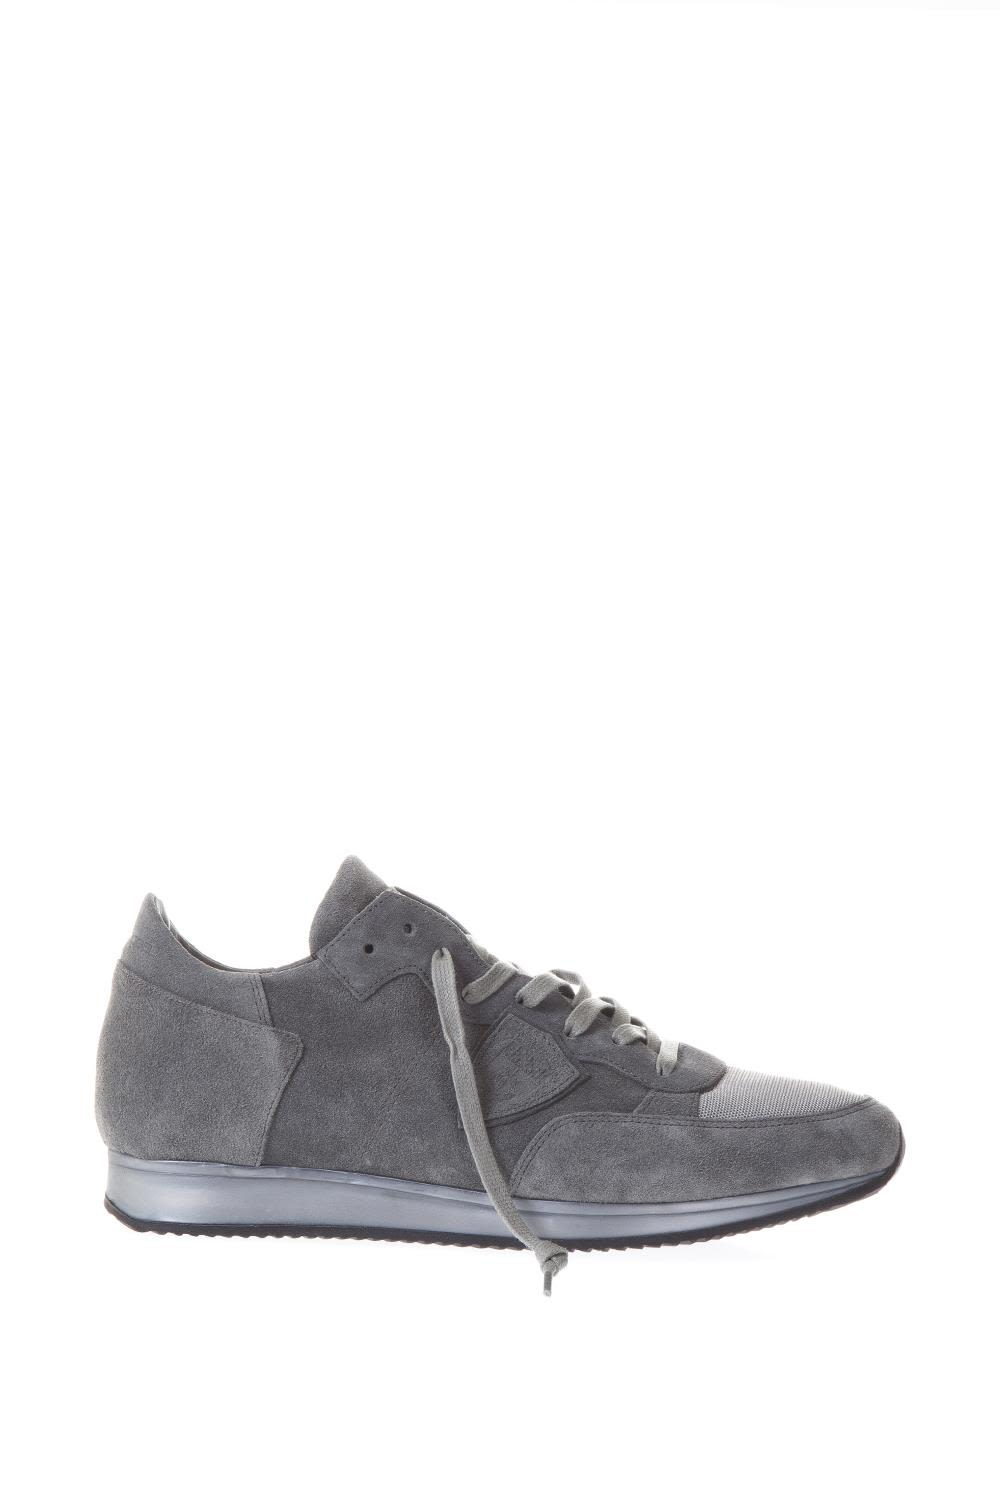 Philippe Model tropez Suede Sneakers